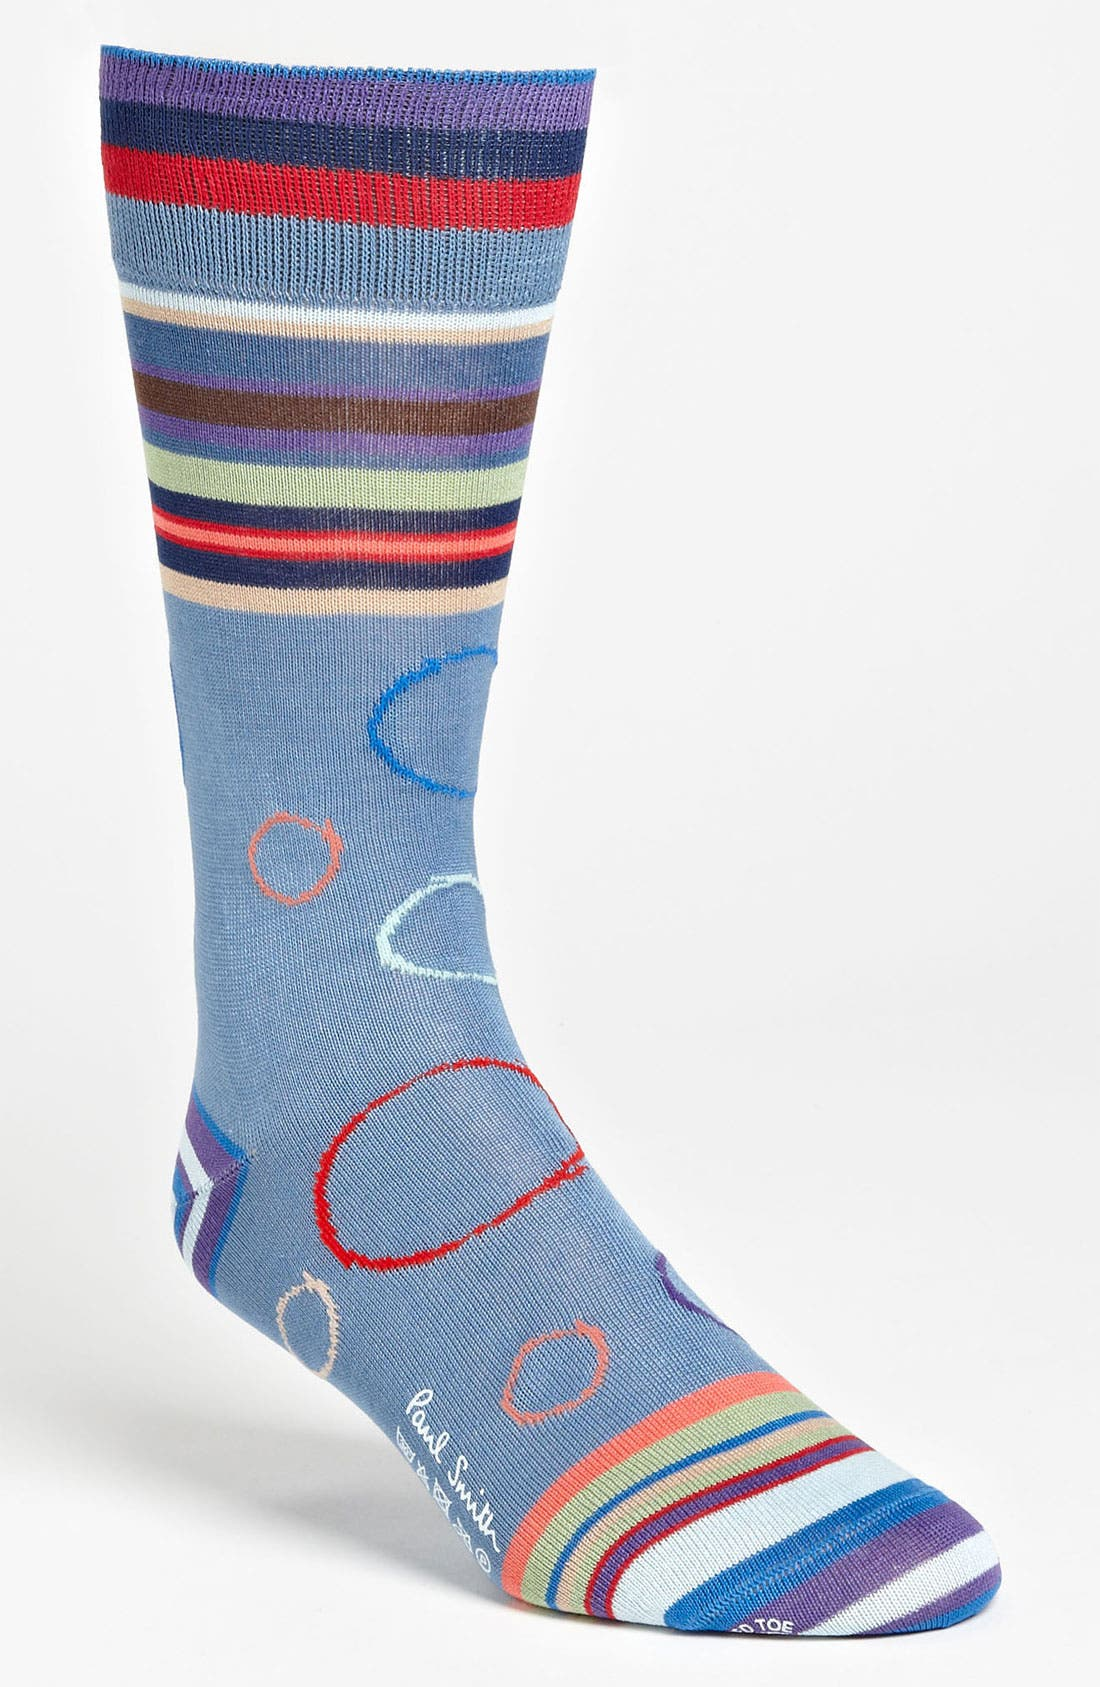 Alternate Image 1 Selected - Paul Smith Accessories Pattern Socks